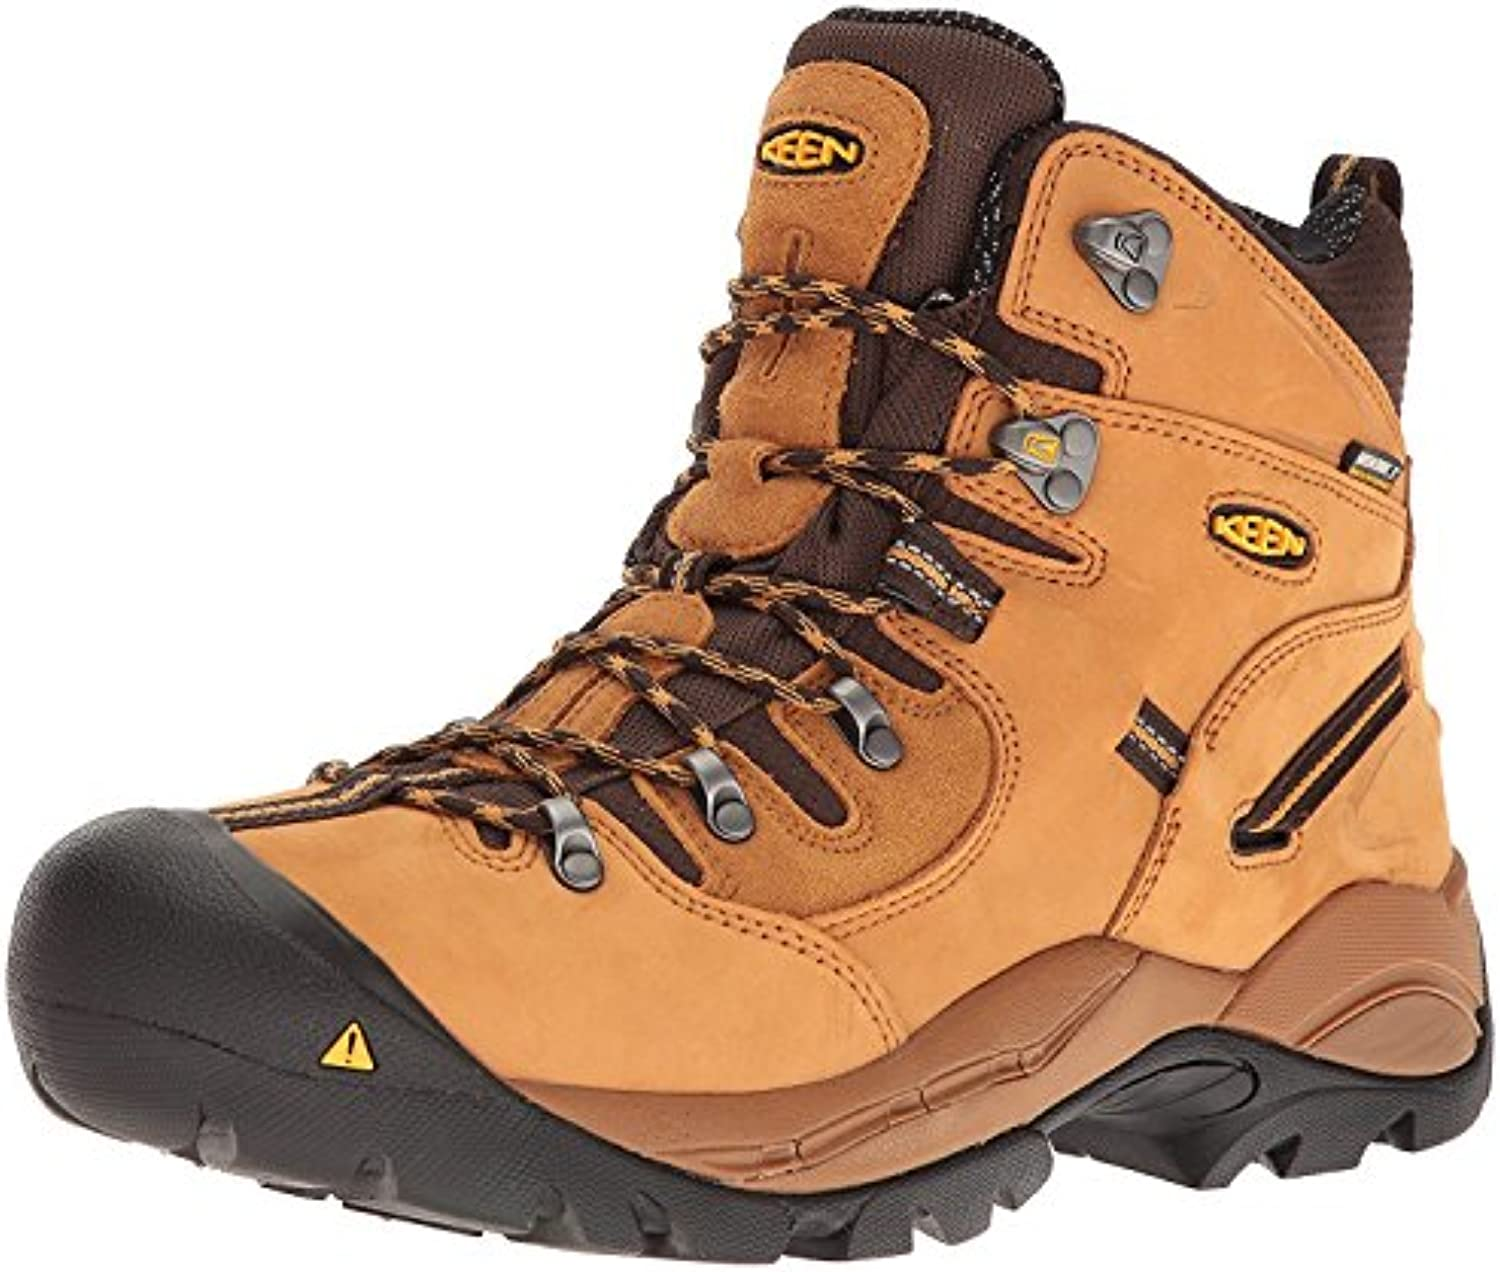 Keen Utility Men'S Pittsburgh Steel Toe Work Boot, Trigo, 46 2E EU/11 2E UK